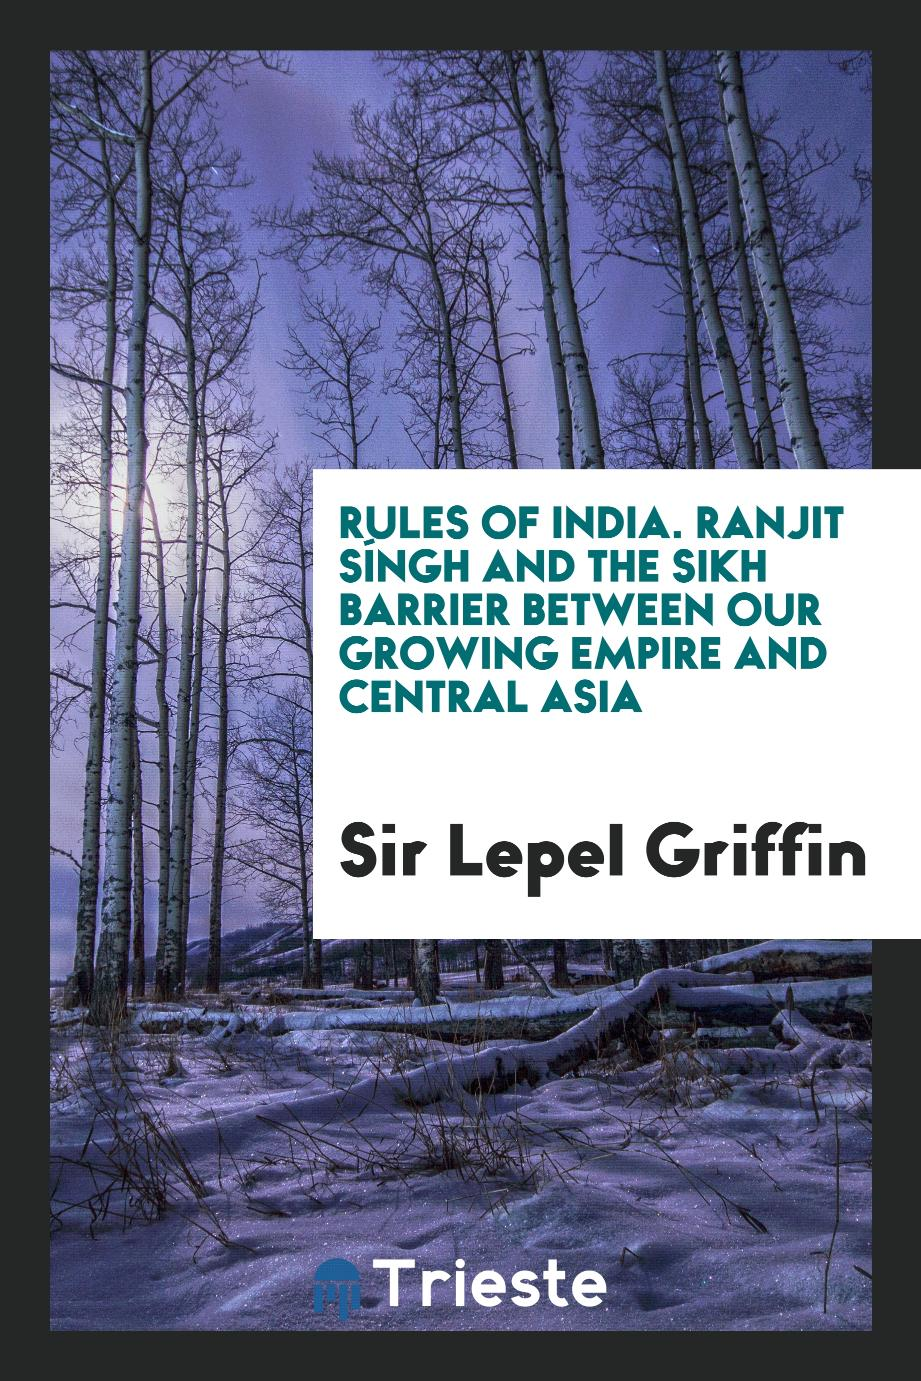 Sir Lepel Griffin - Rules of India. Ranjit Síngh and the Sikh Barrier between Our Growing Empire and Central Asia